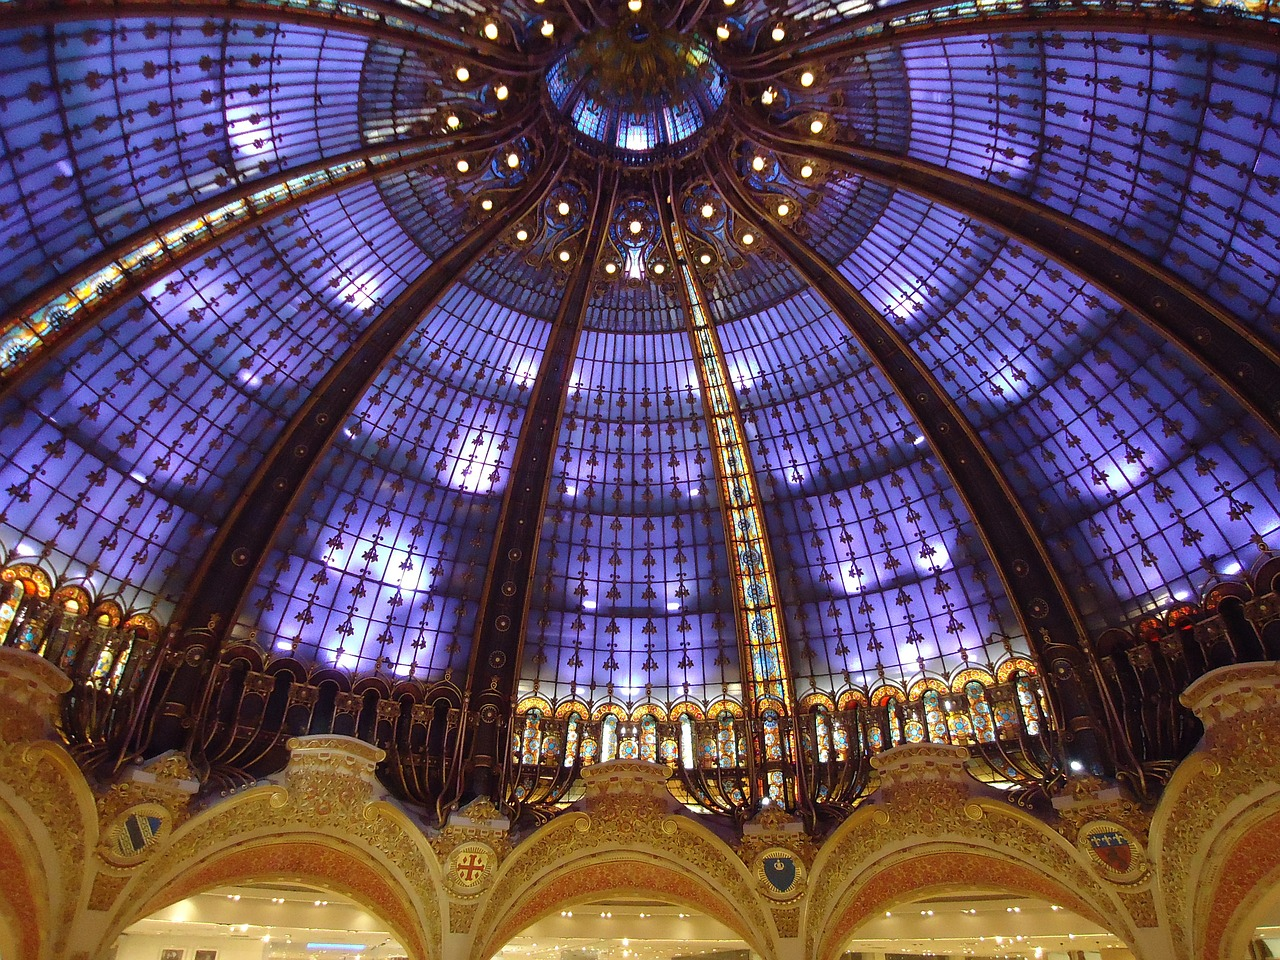 galeries lafayette stained glass dome